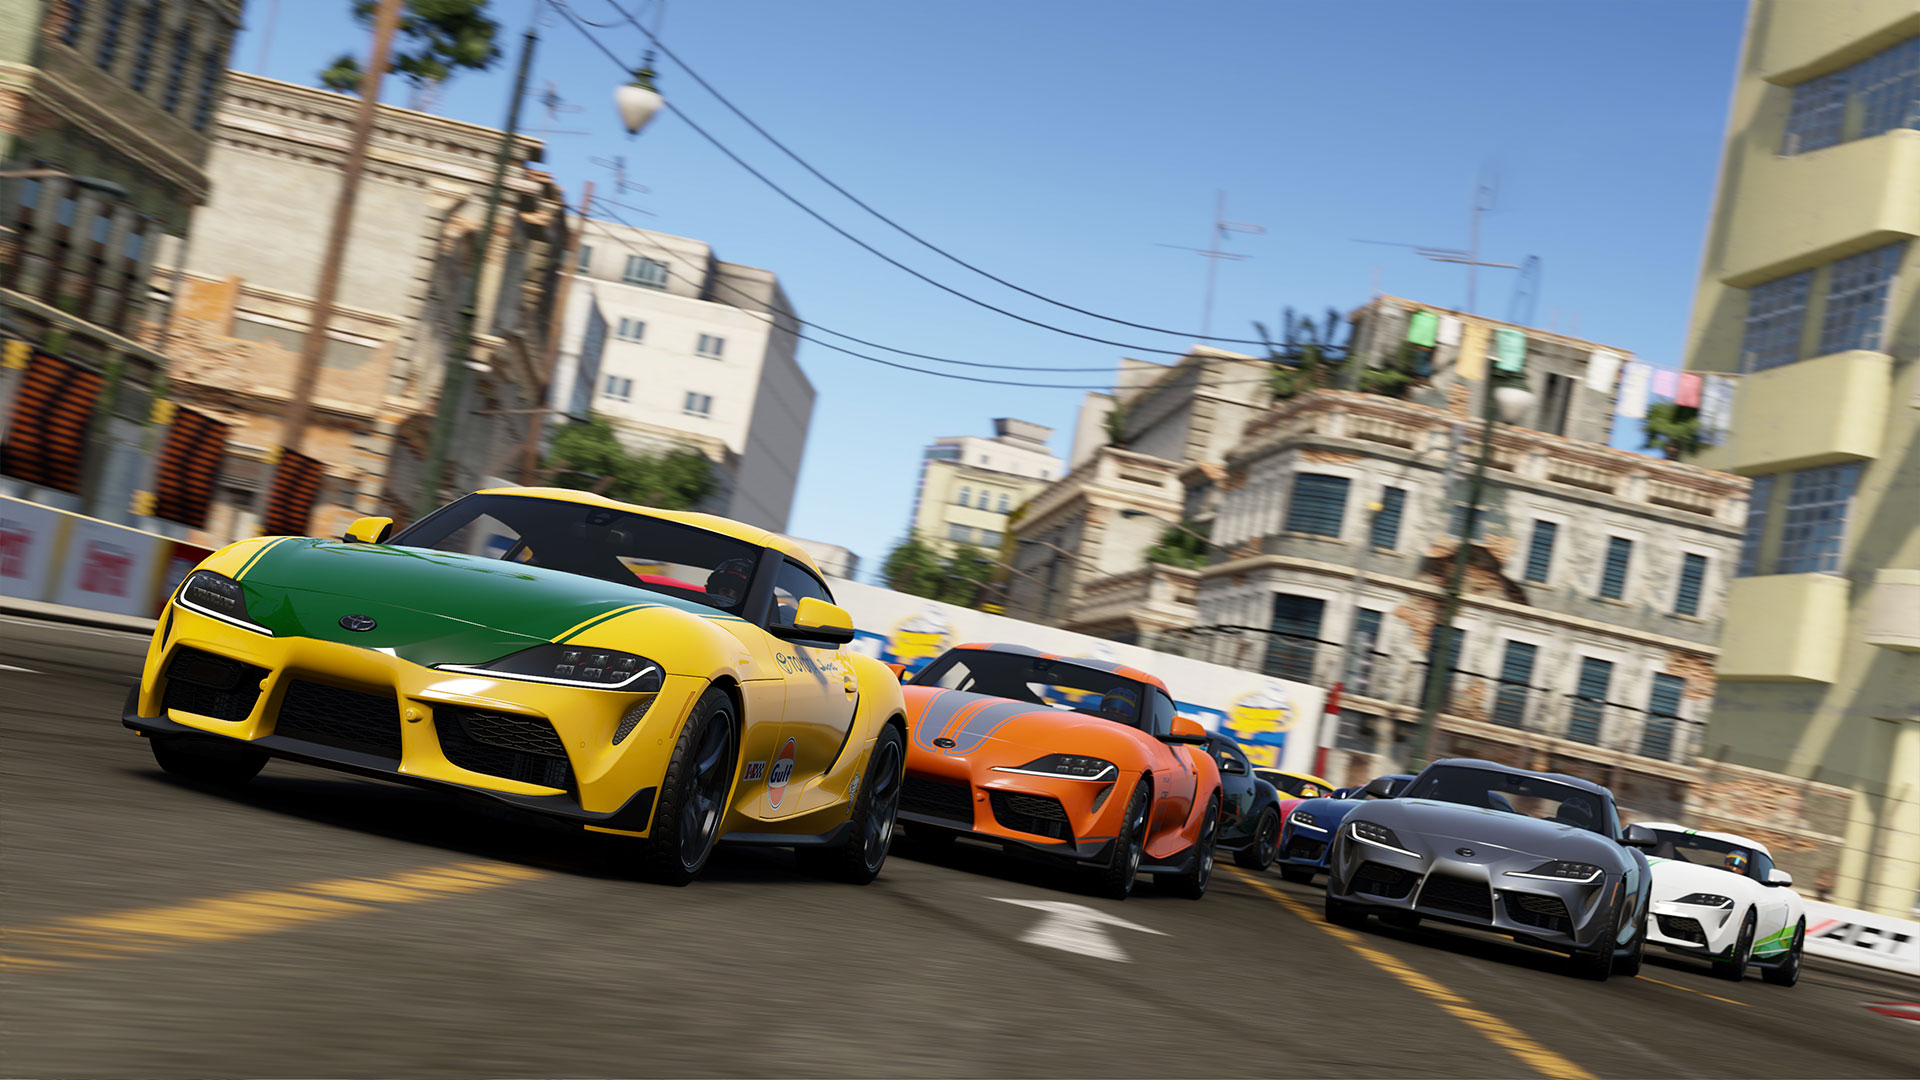 Project Cars 3 preview: At last a driving sim that's properly playable with  a pad | GamesRadar+